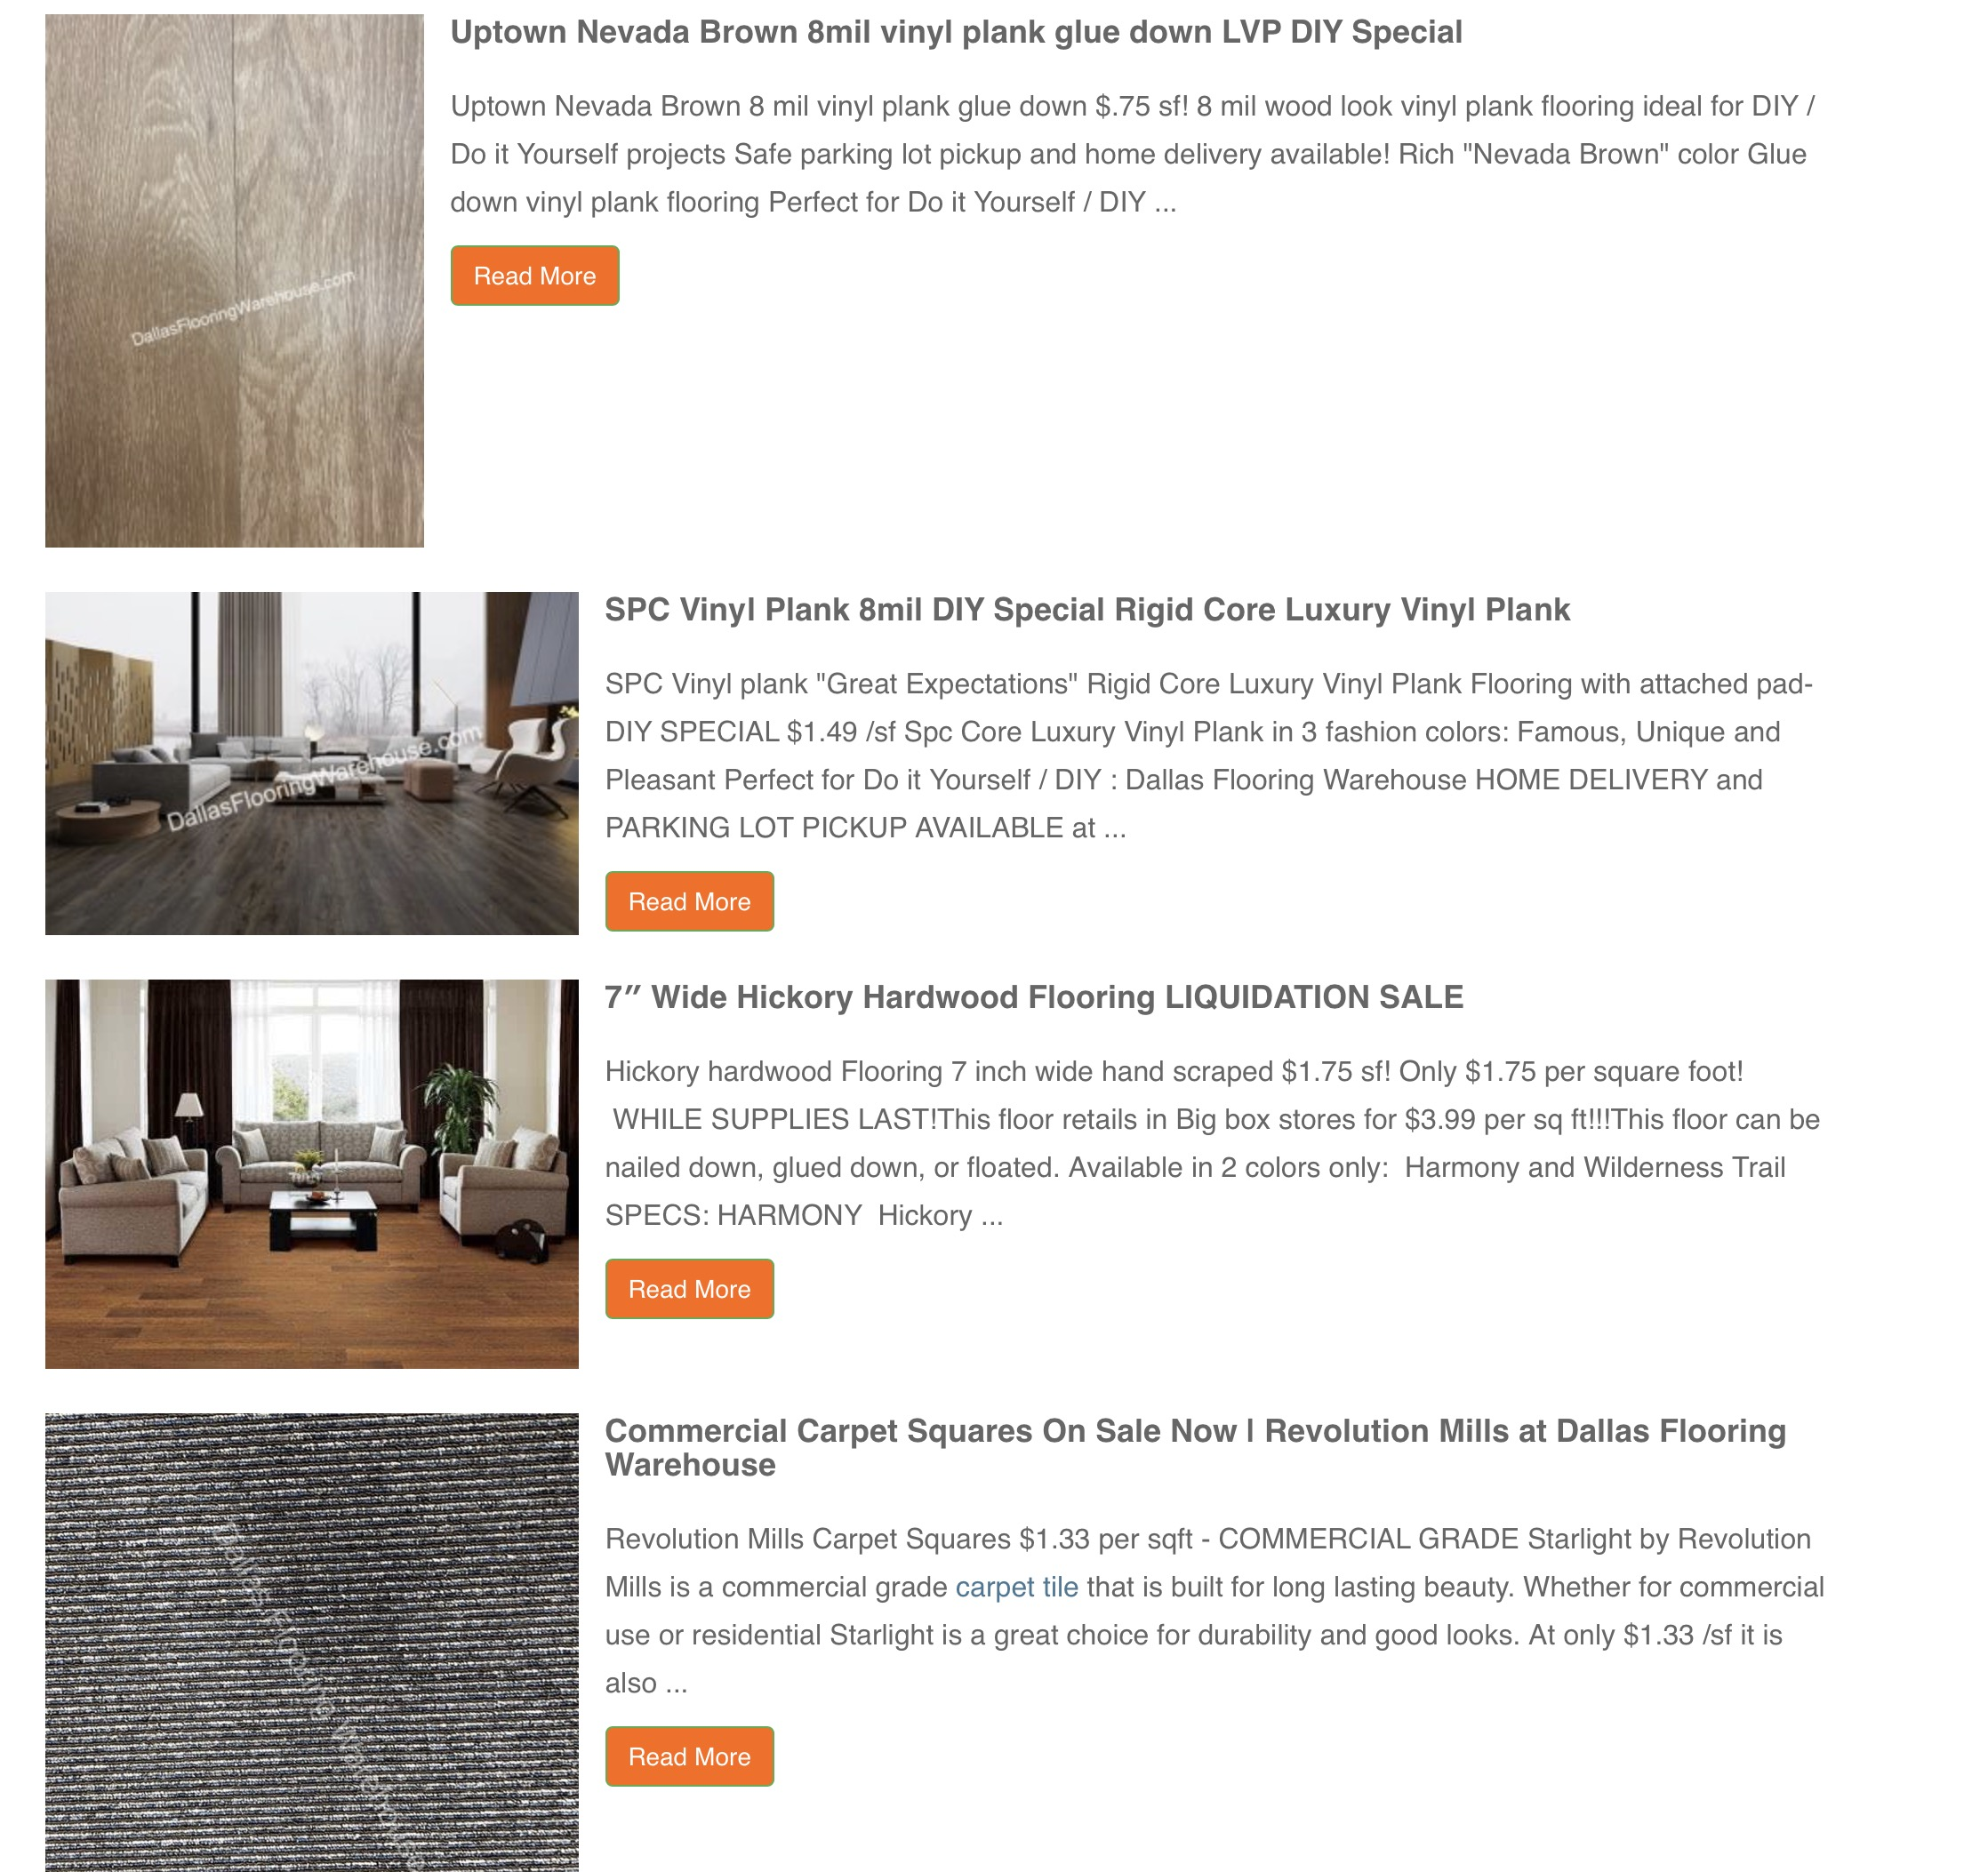 Dallas Tx Do It Yourself Flooring With No Contact Pickup